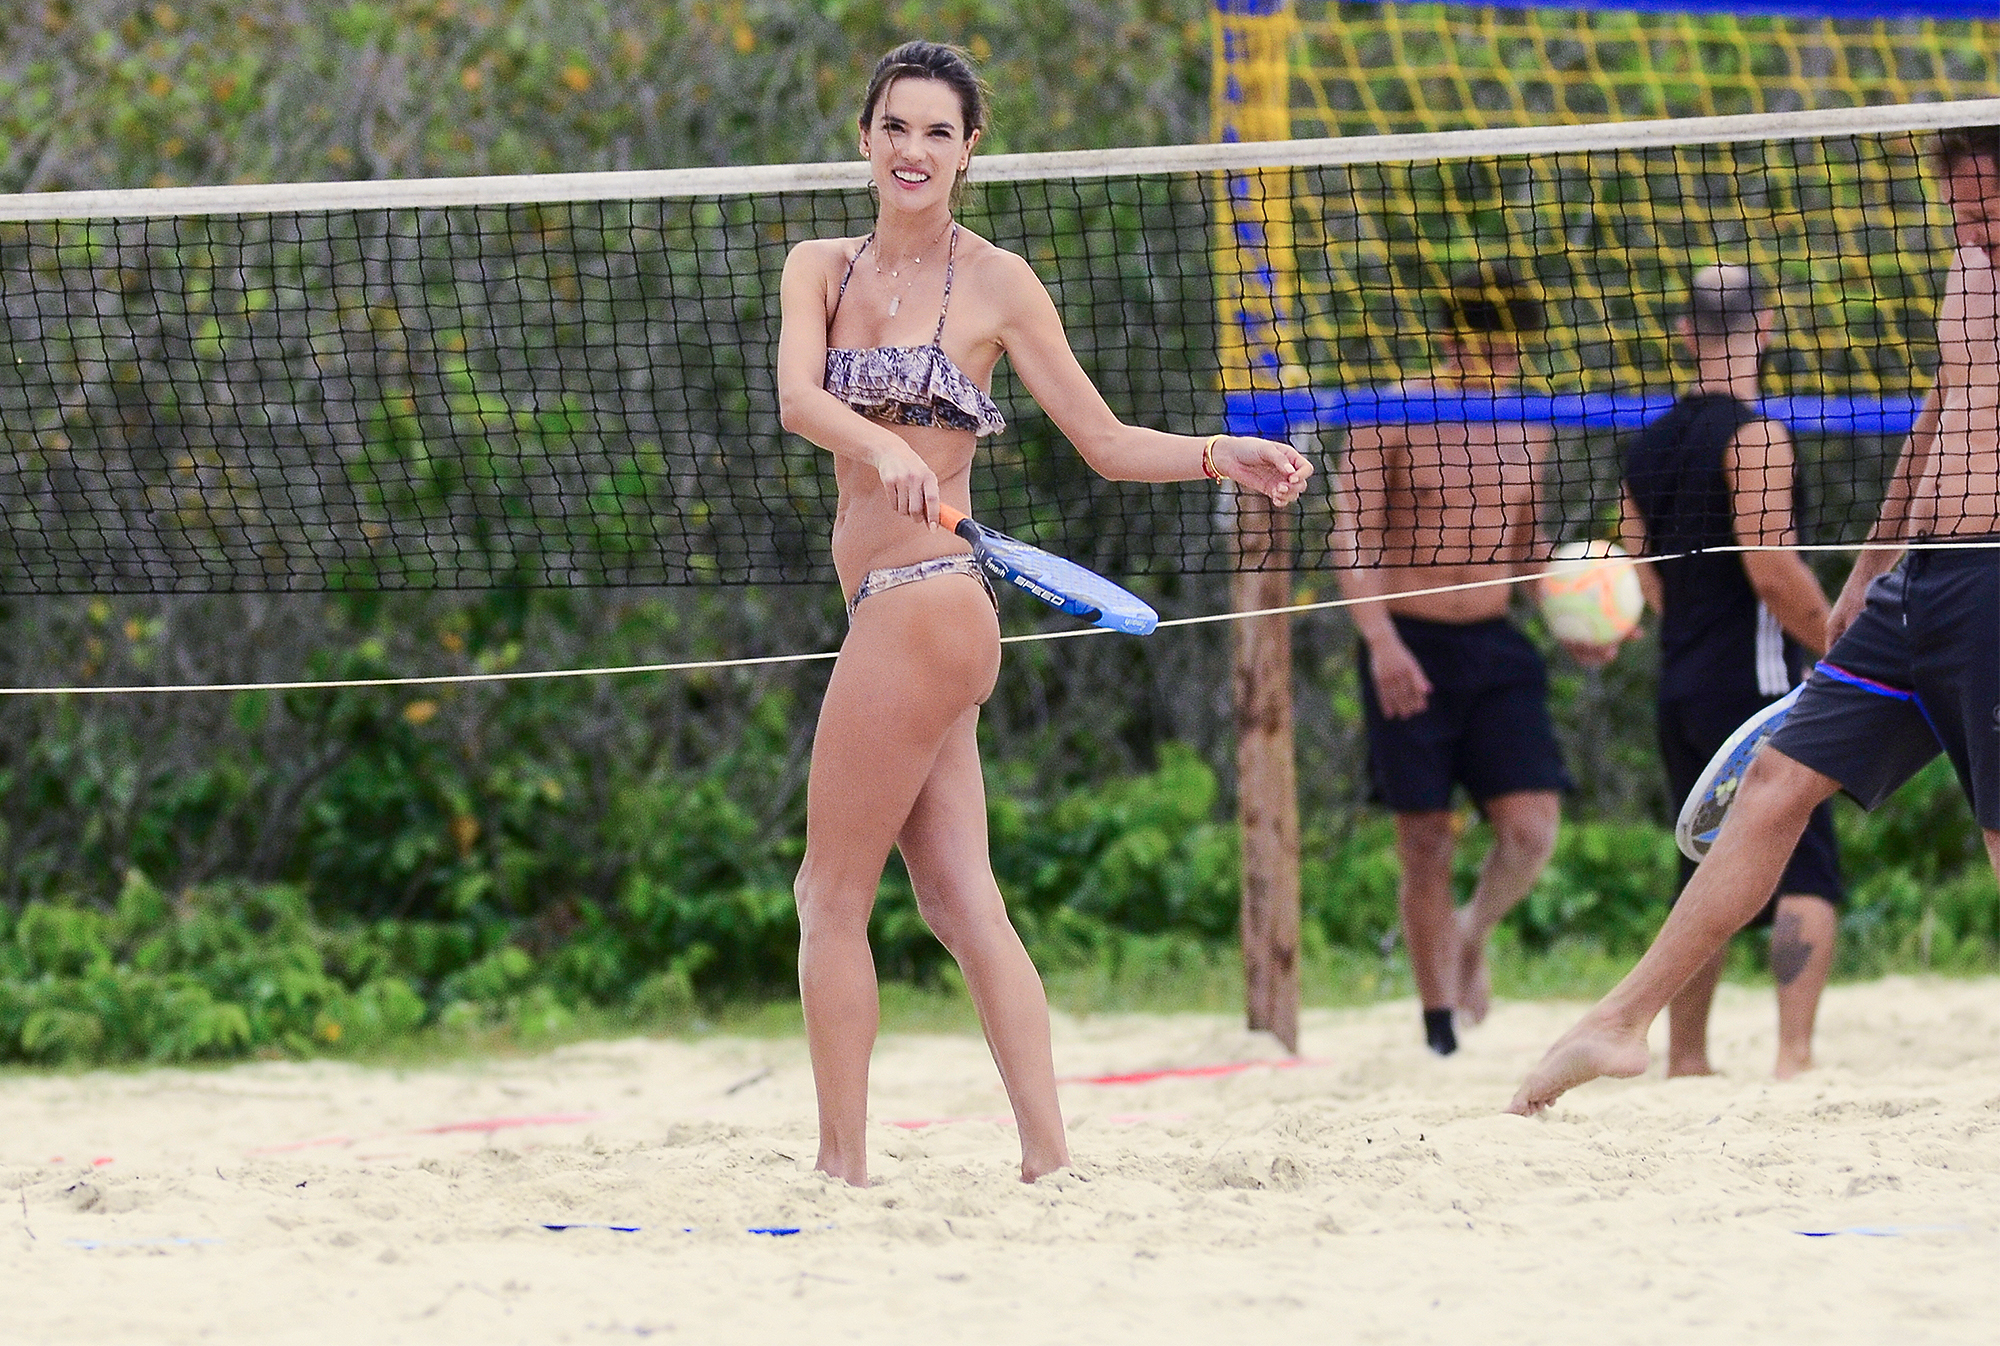 EXCLUSIVE: Super Model Alessandra Ambrosio displays her amazing figure in a two piece bikini on the beach as she is seen engaged in a match of Beach Tennis while on Holiday in Brazil.